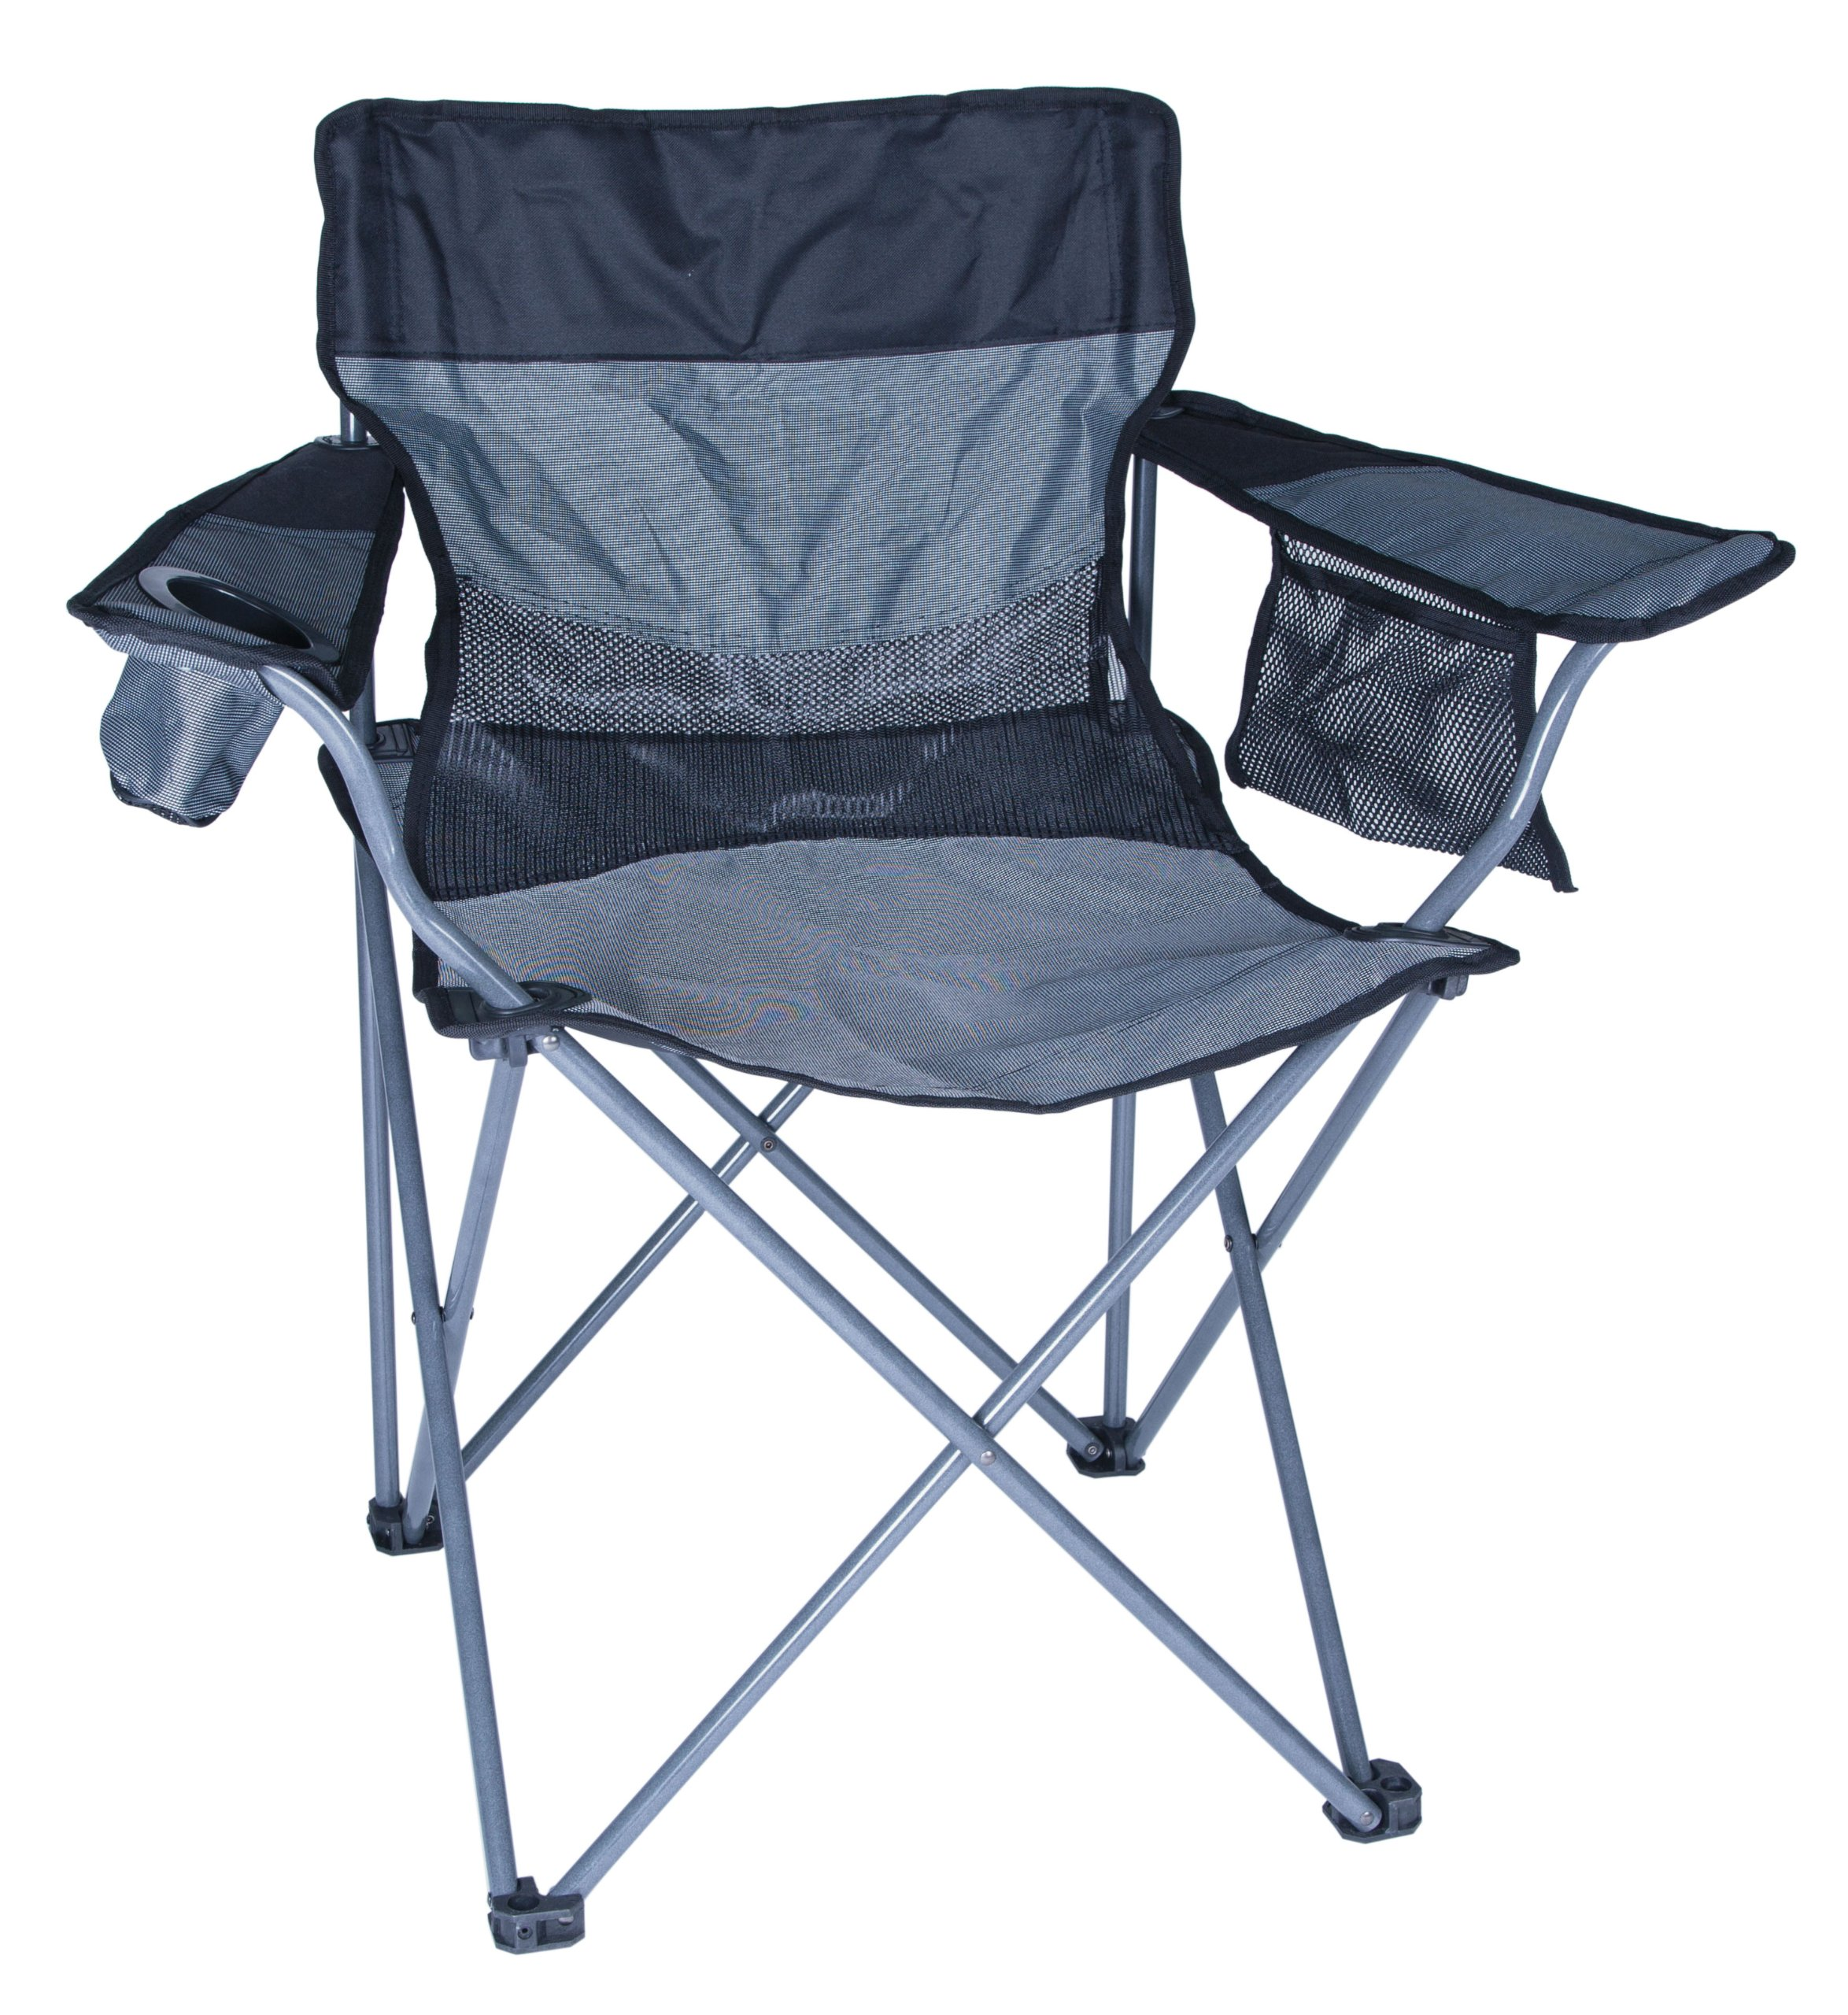 Stansport Apex Oversized High Back Arm Chair (Black/Silver) by Stansport